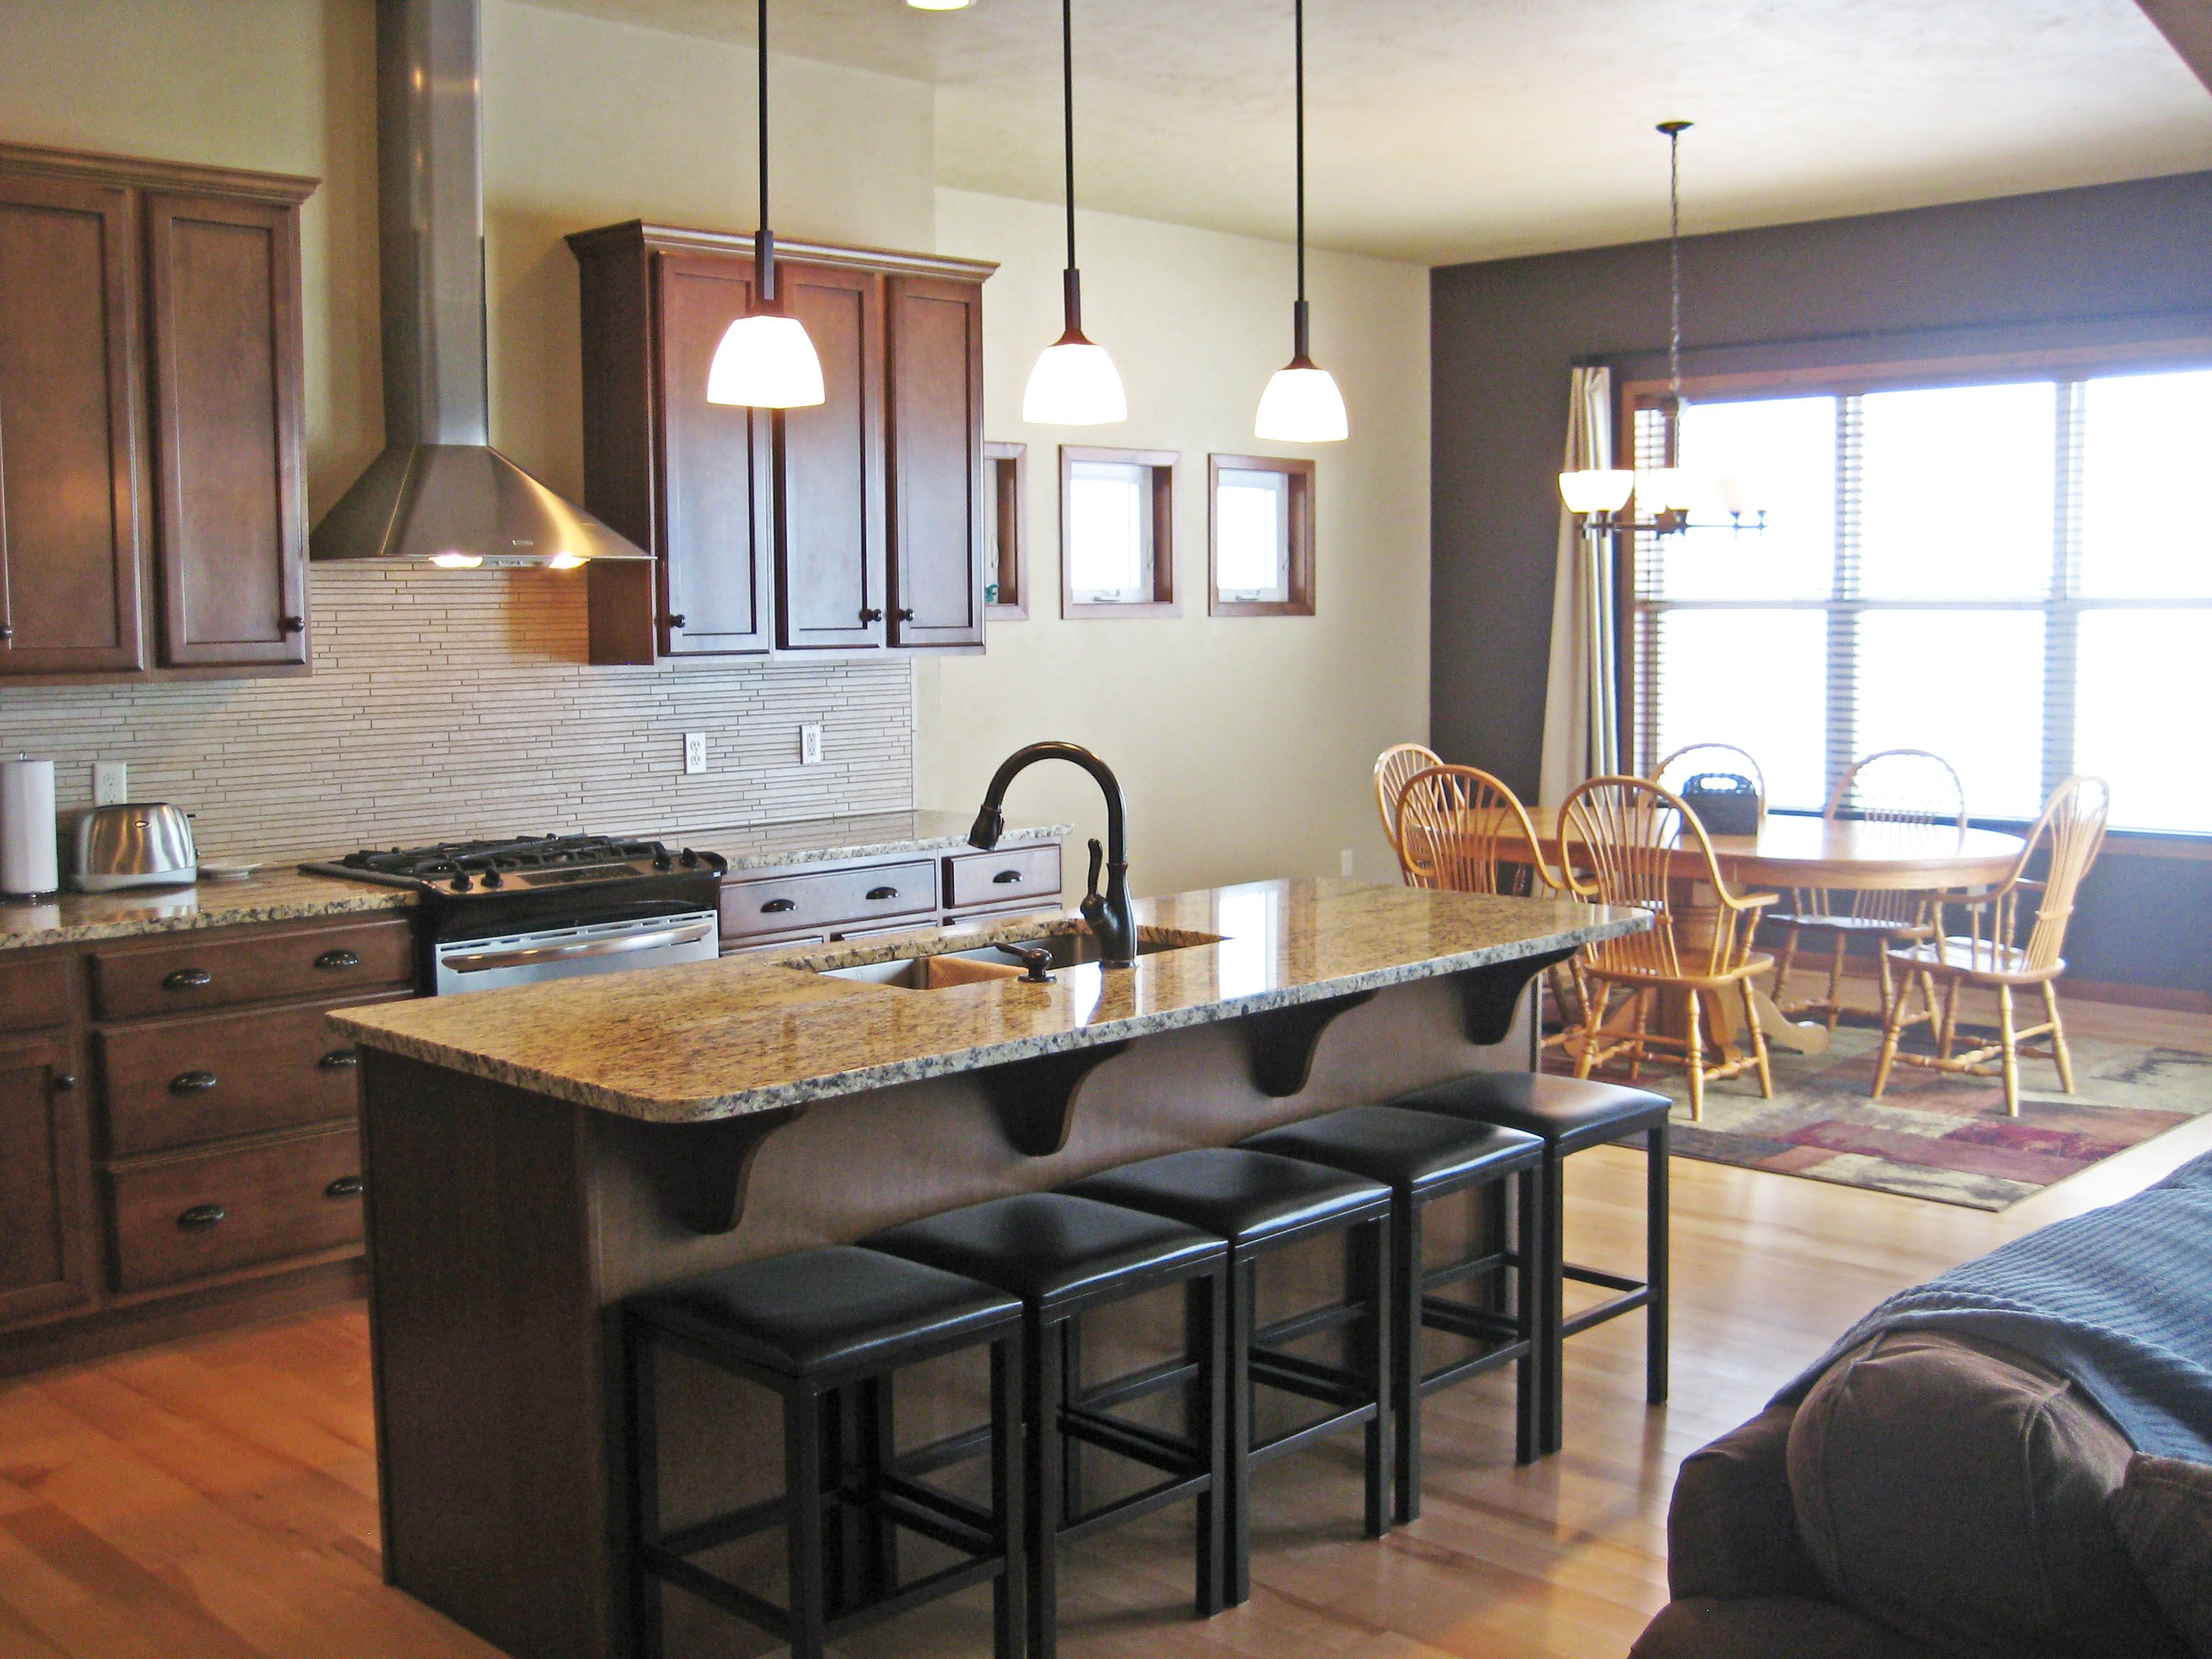 Spacious Kitchen with island seating